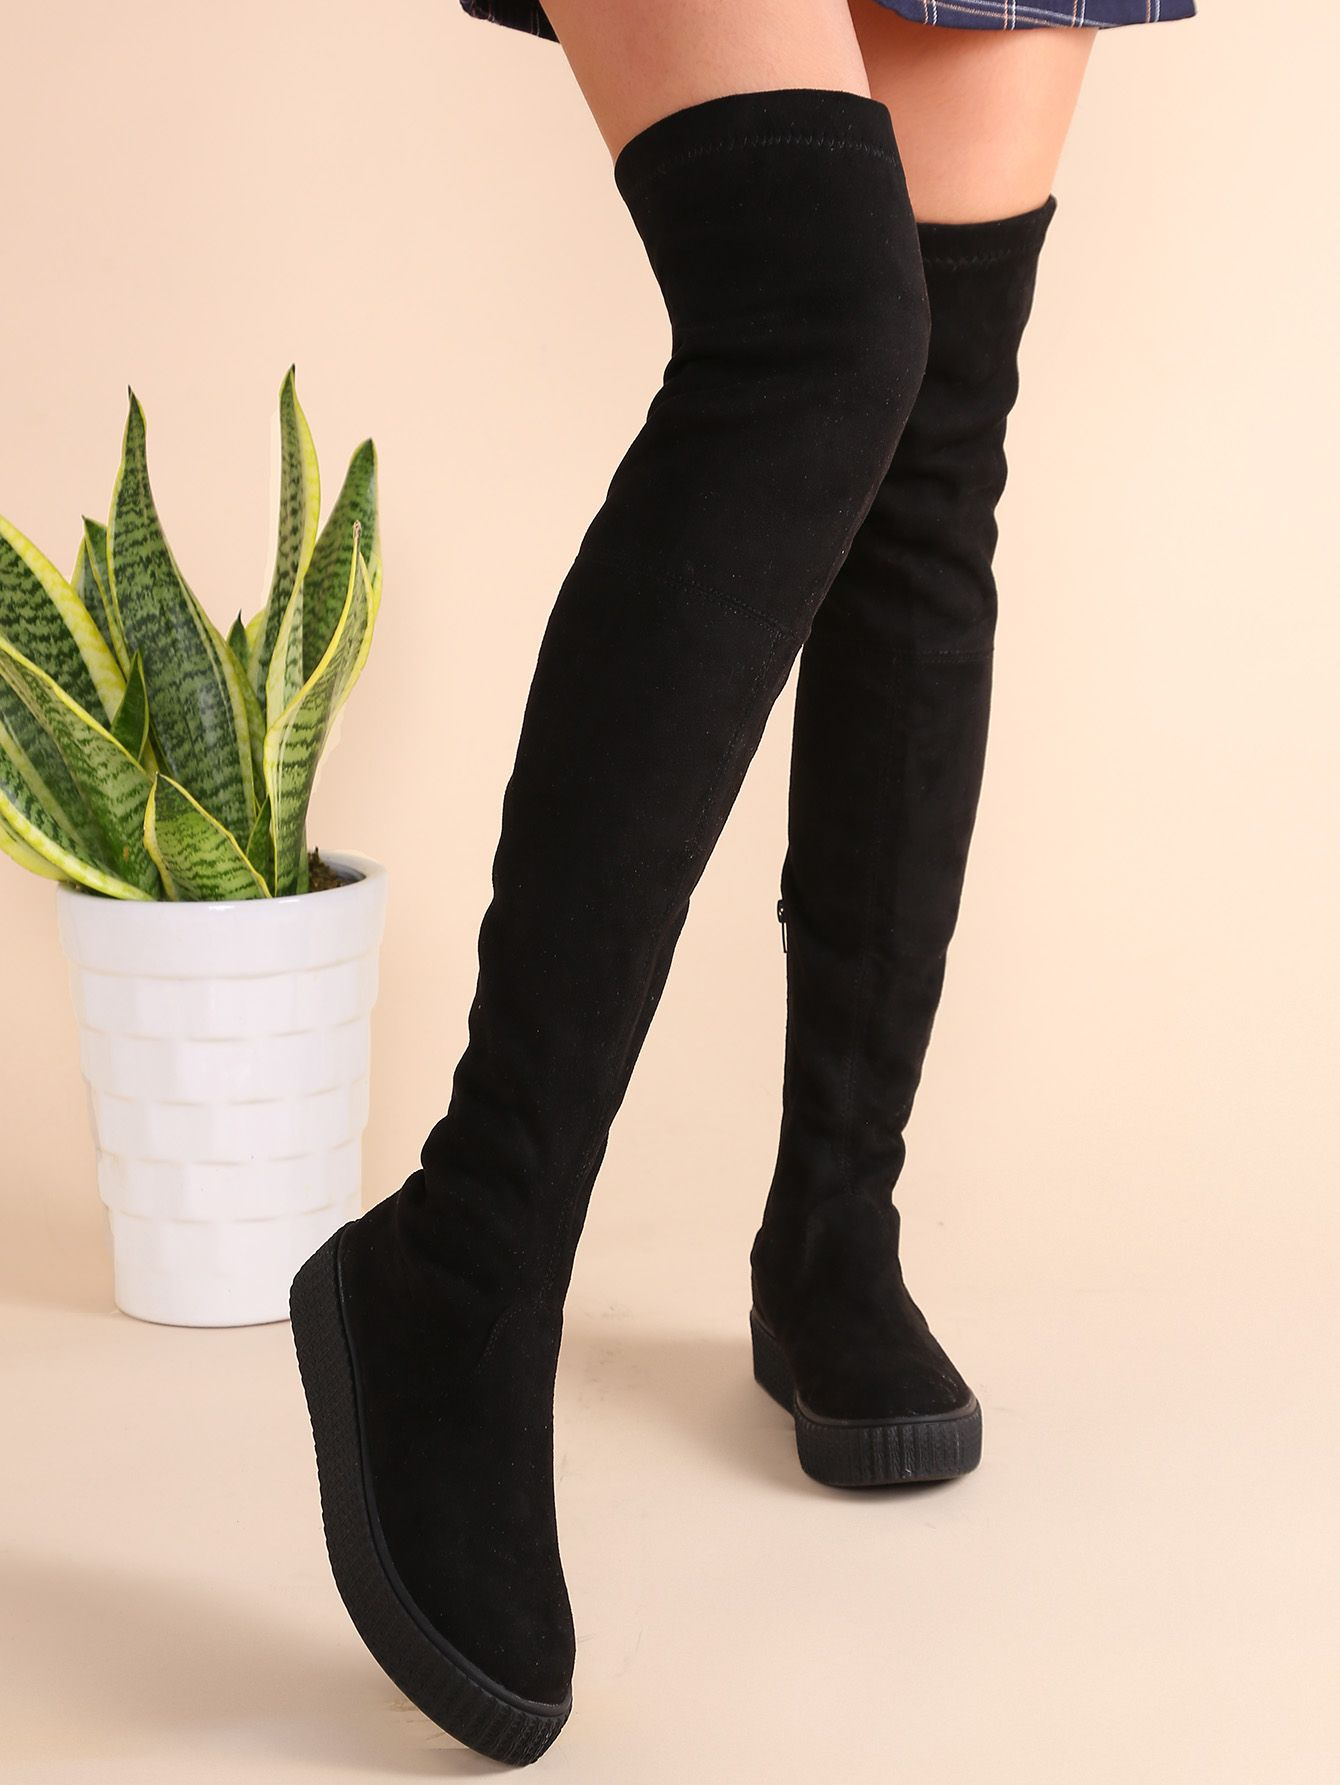 f8c3009de5 Black Round Toe Zipper Over The Knee Boots -SheIn(Sheinside ...